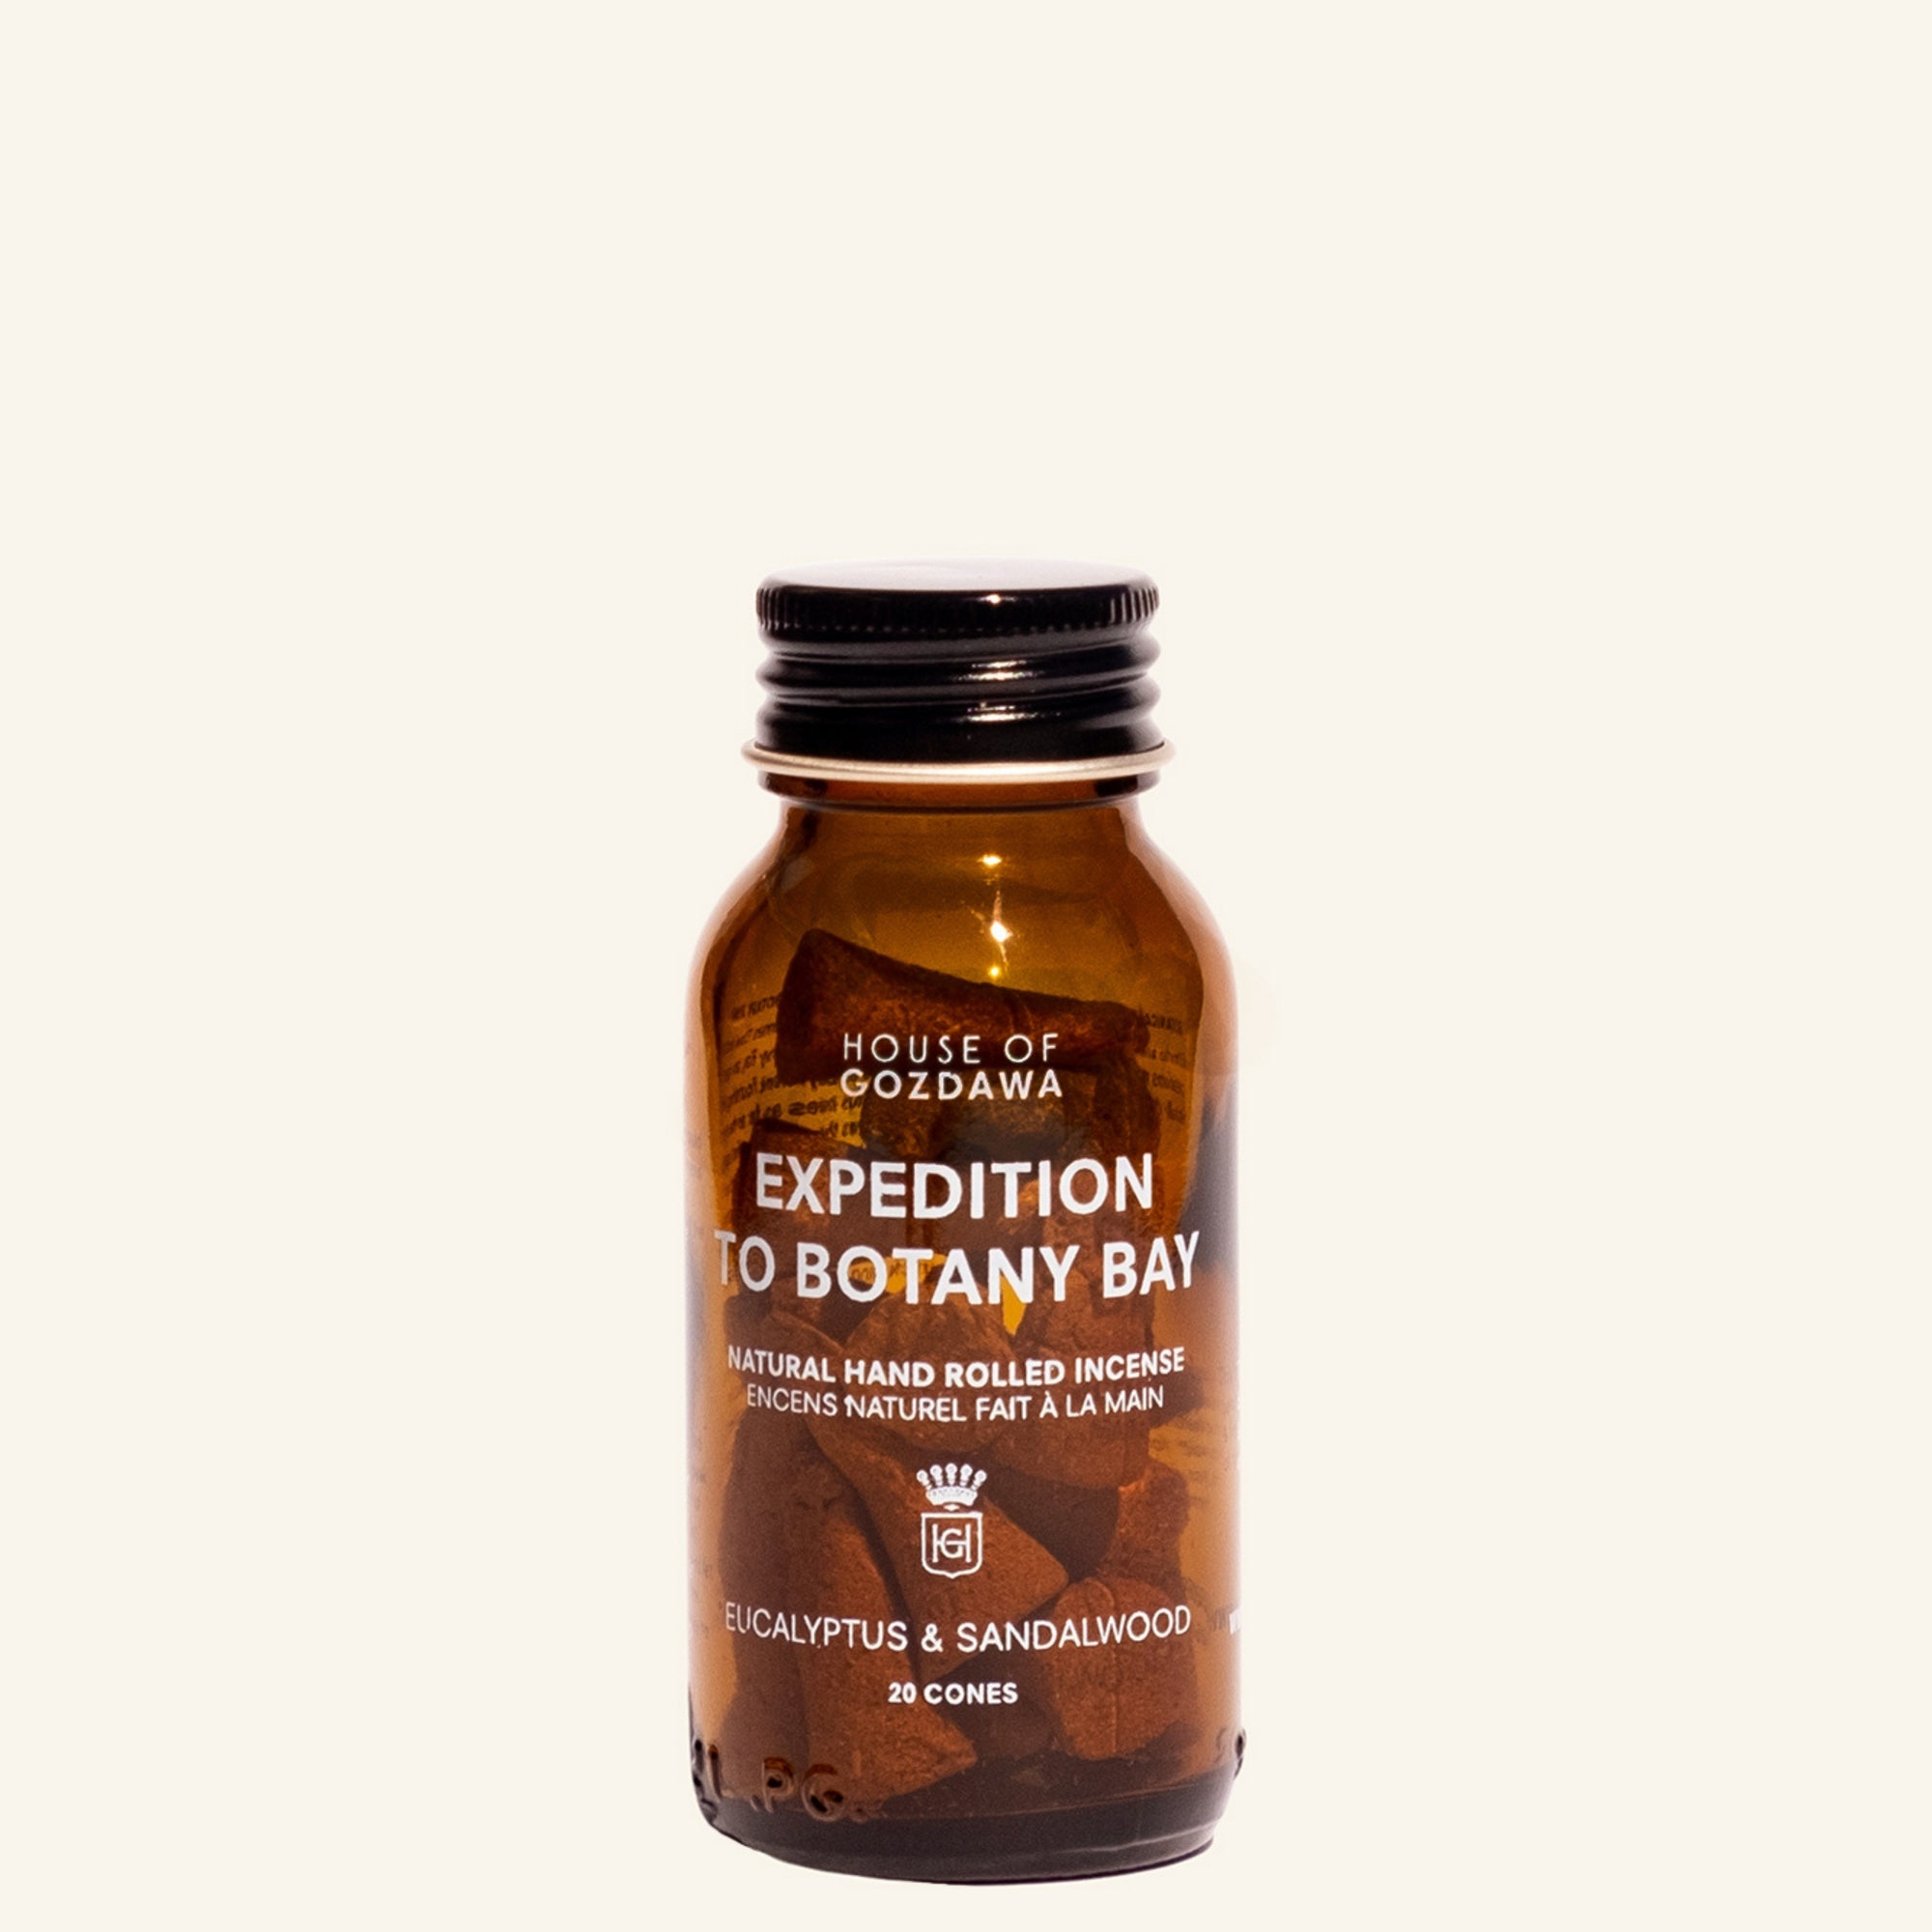 Expedition to Botany Bay Premium Incense